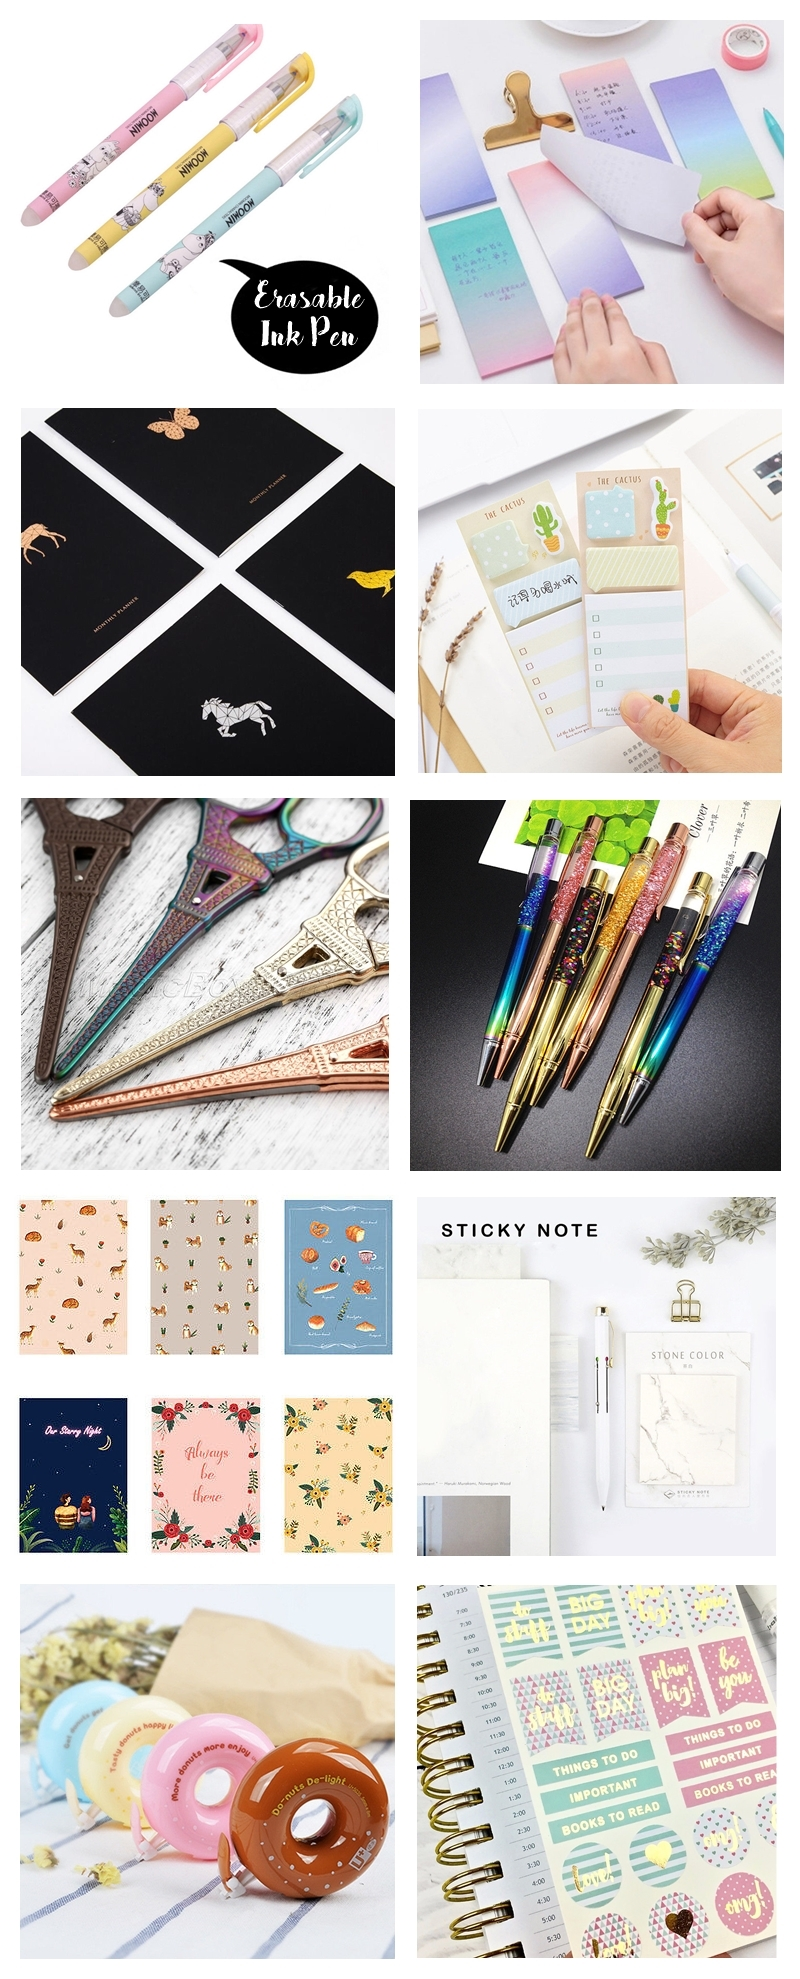 ebay-budget-stationery-2018